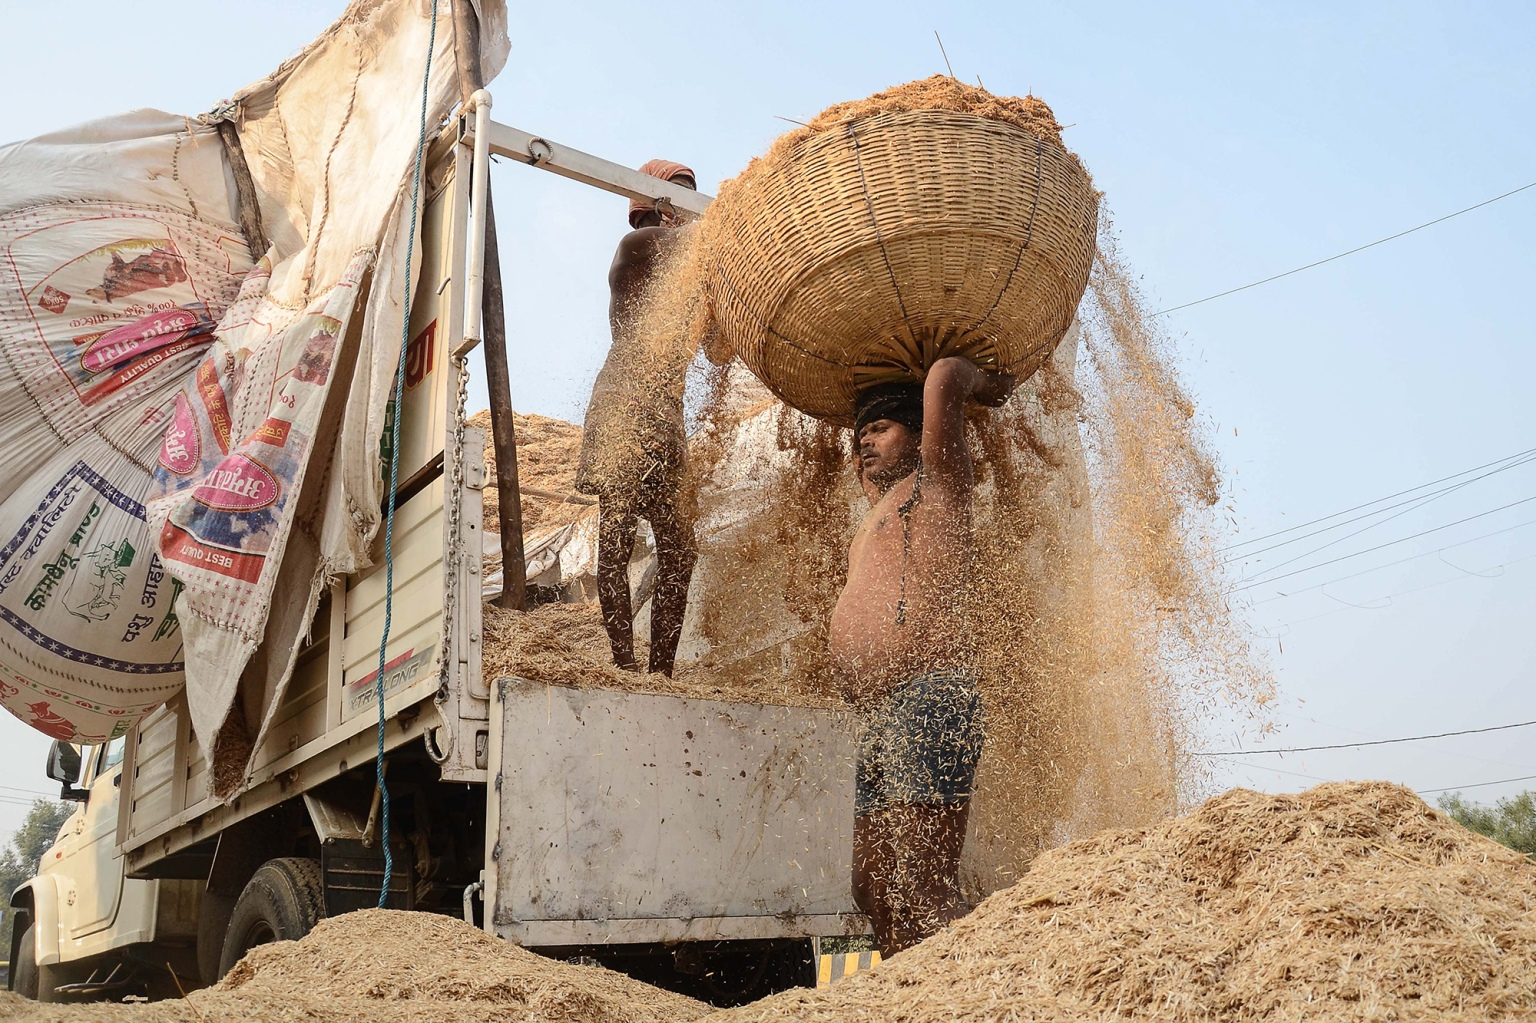 An Indian laborer carries a load of wheat straw on his head to be used for animal feed on the outskirts of Jabalpur in Madhya Pradesh state on Feb. 4. (Uma Shankar Mishra/AFP/Getty Images)